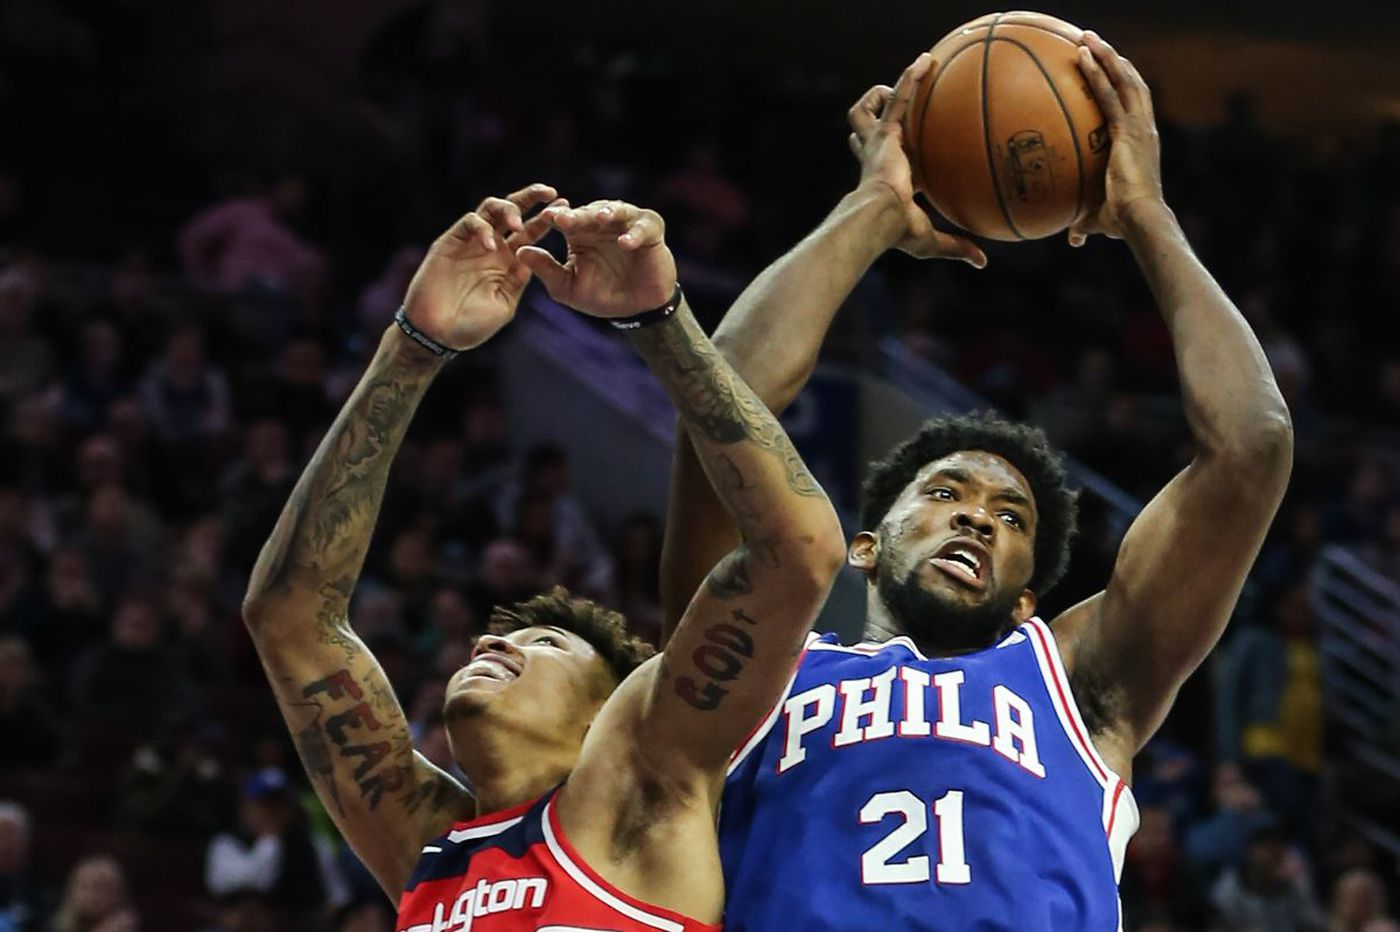 Sixers-Wizards: Ben Simmons and Joel Embiid lead the way, and other quick thoughts from a 118-113 win